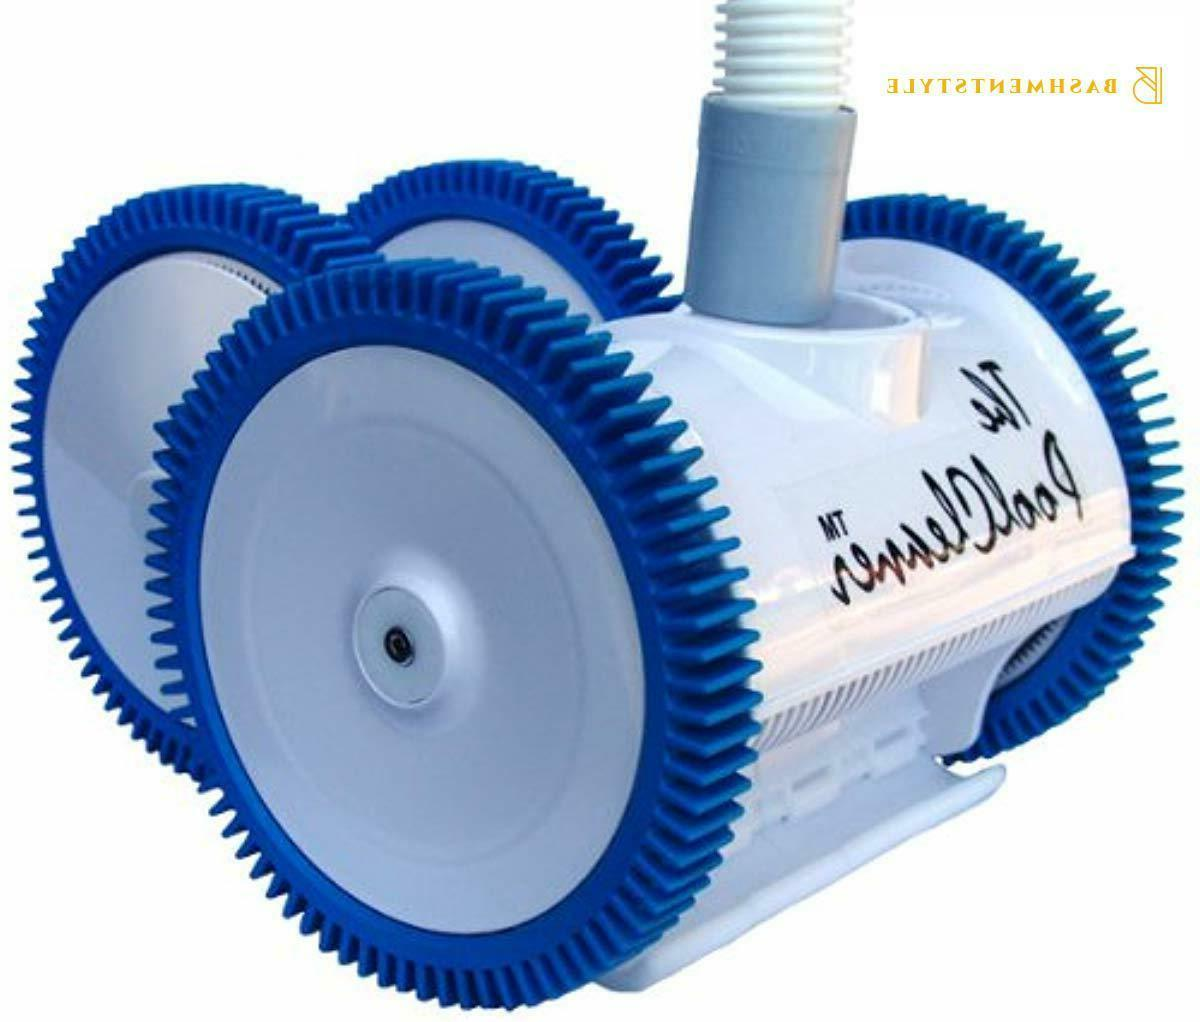 hayward 896584000 020 the pool cleaner automatic